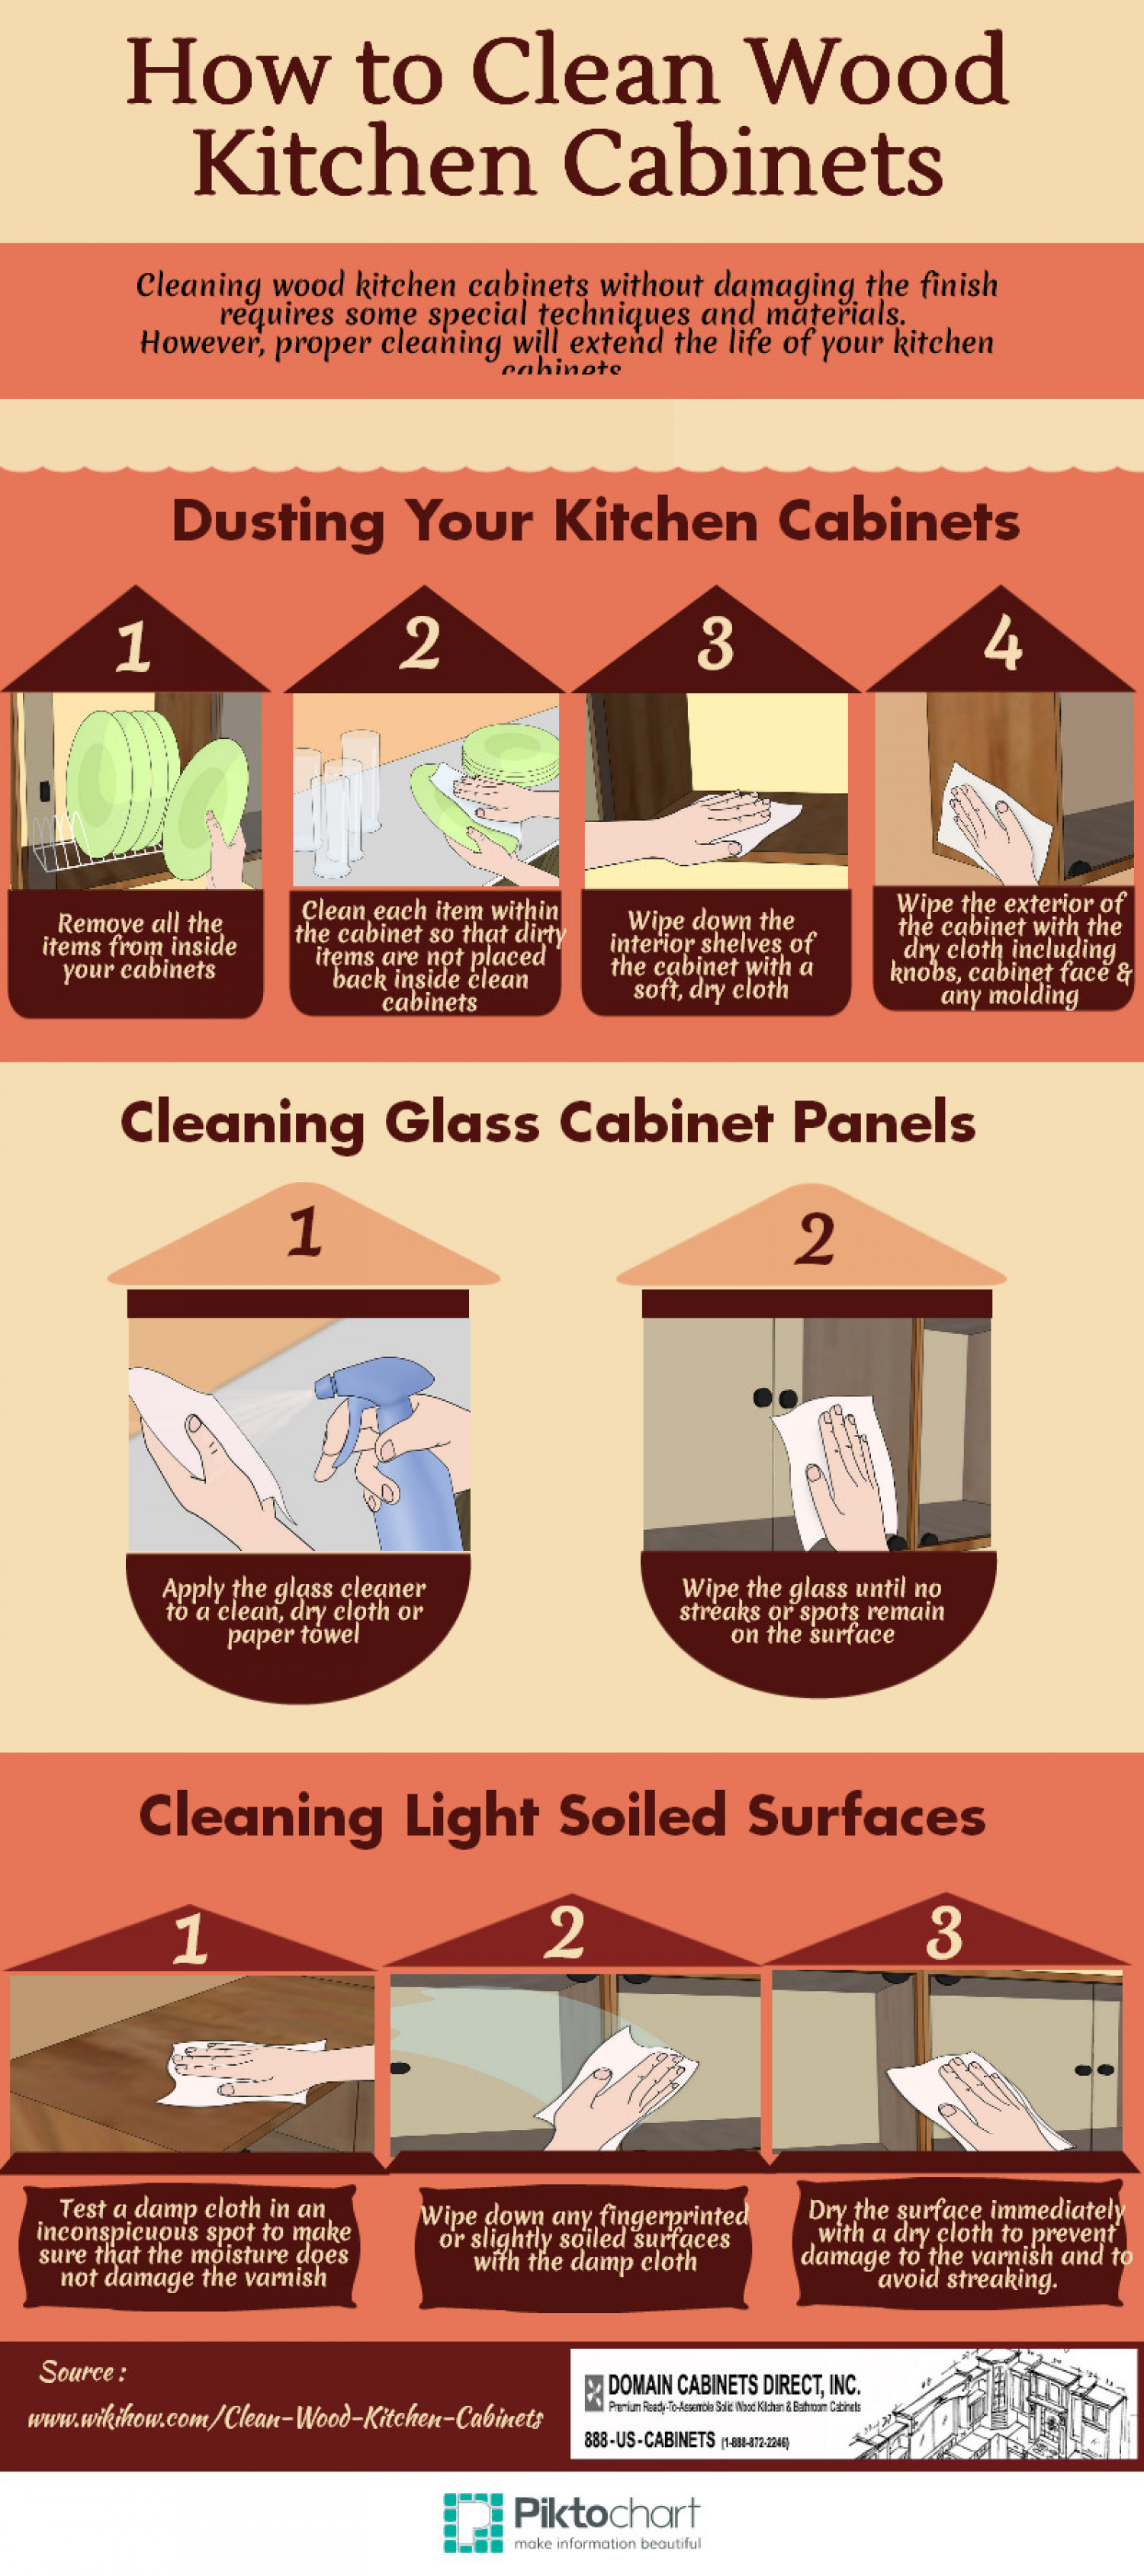 How to Clean Wood Kitchen Cabinets Infographic